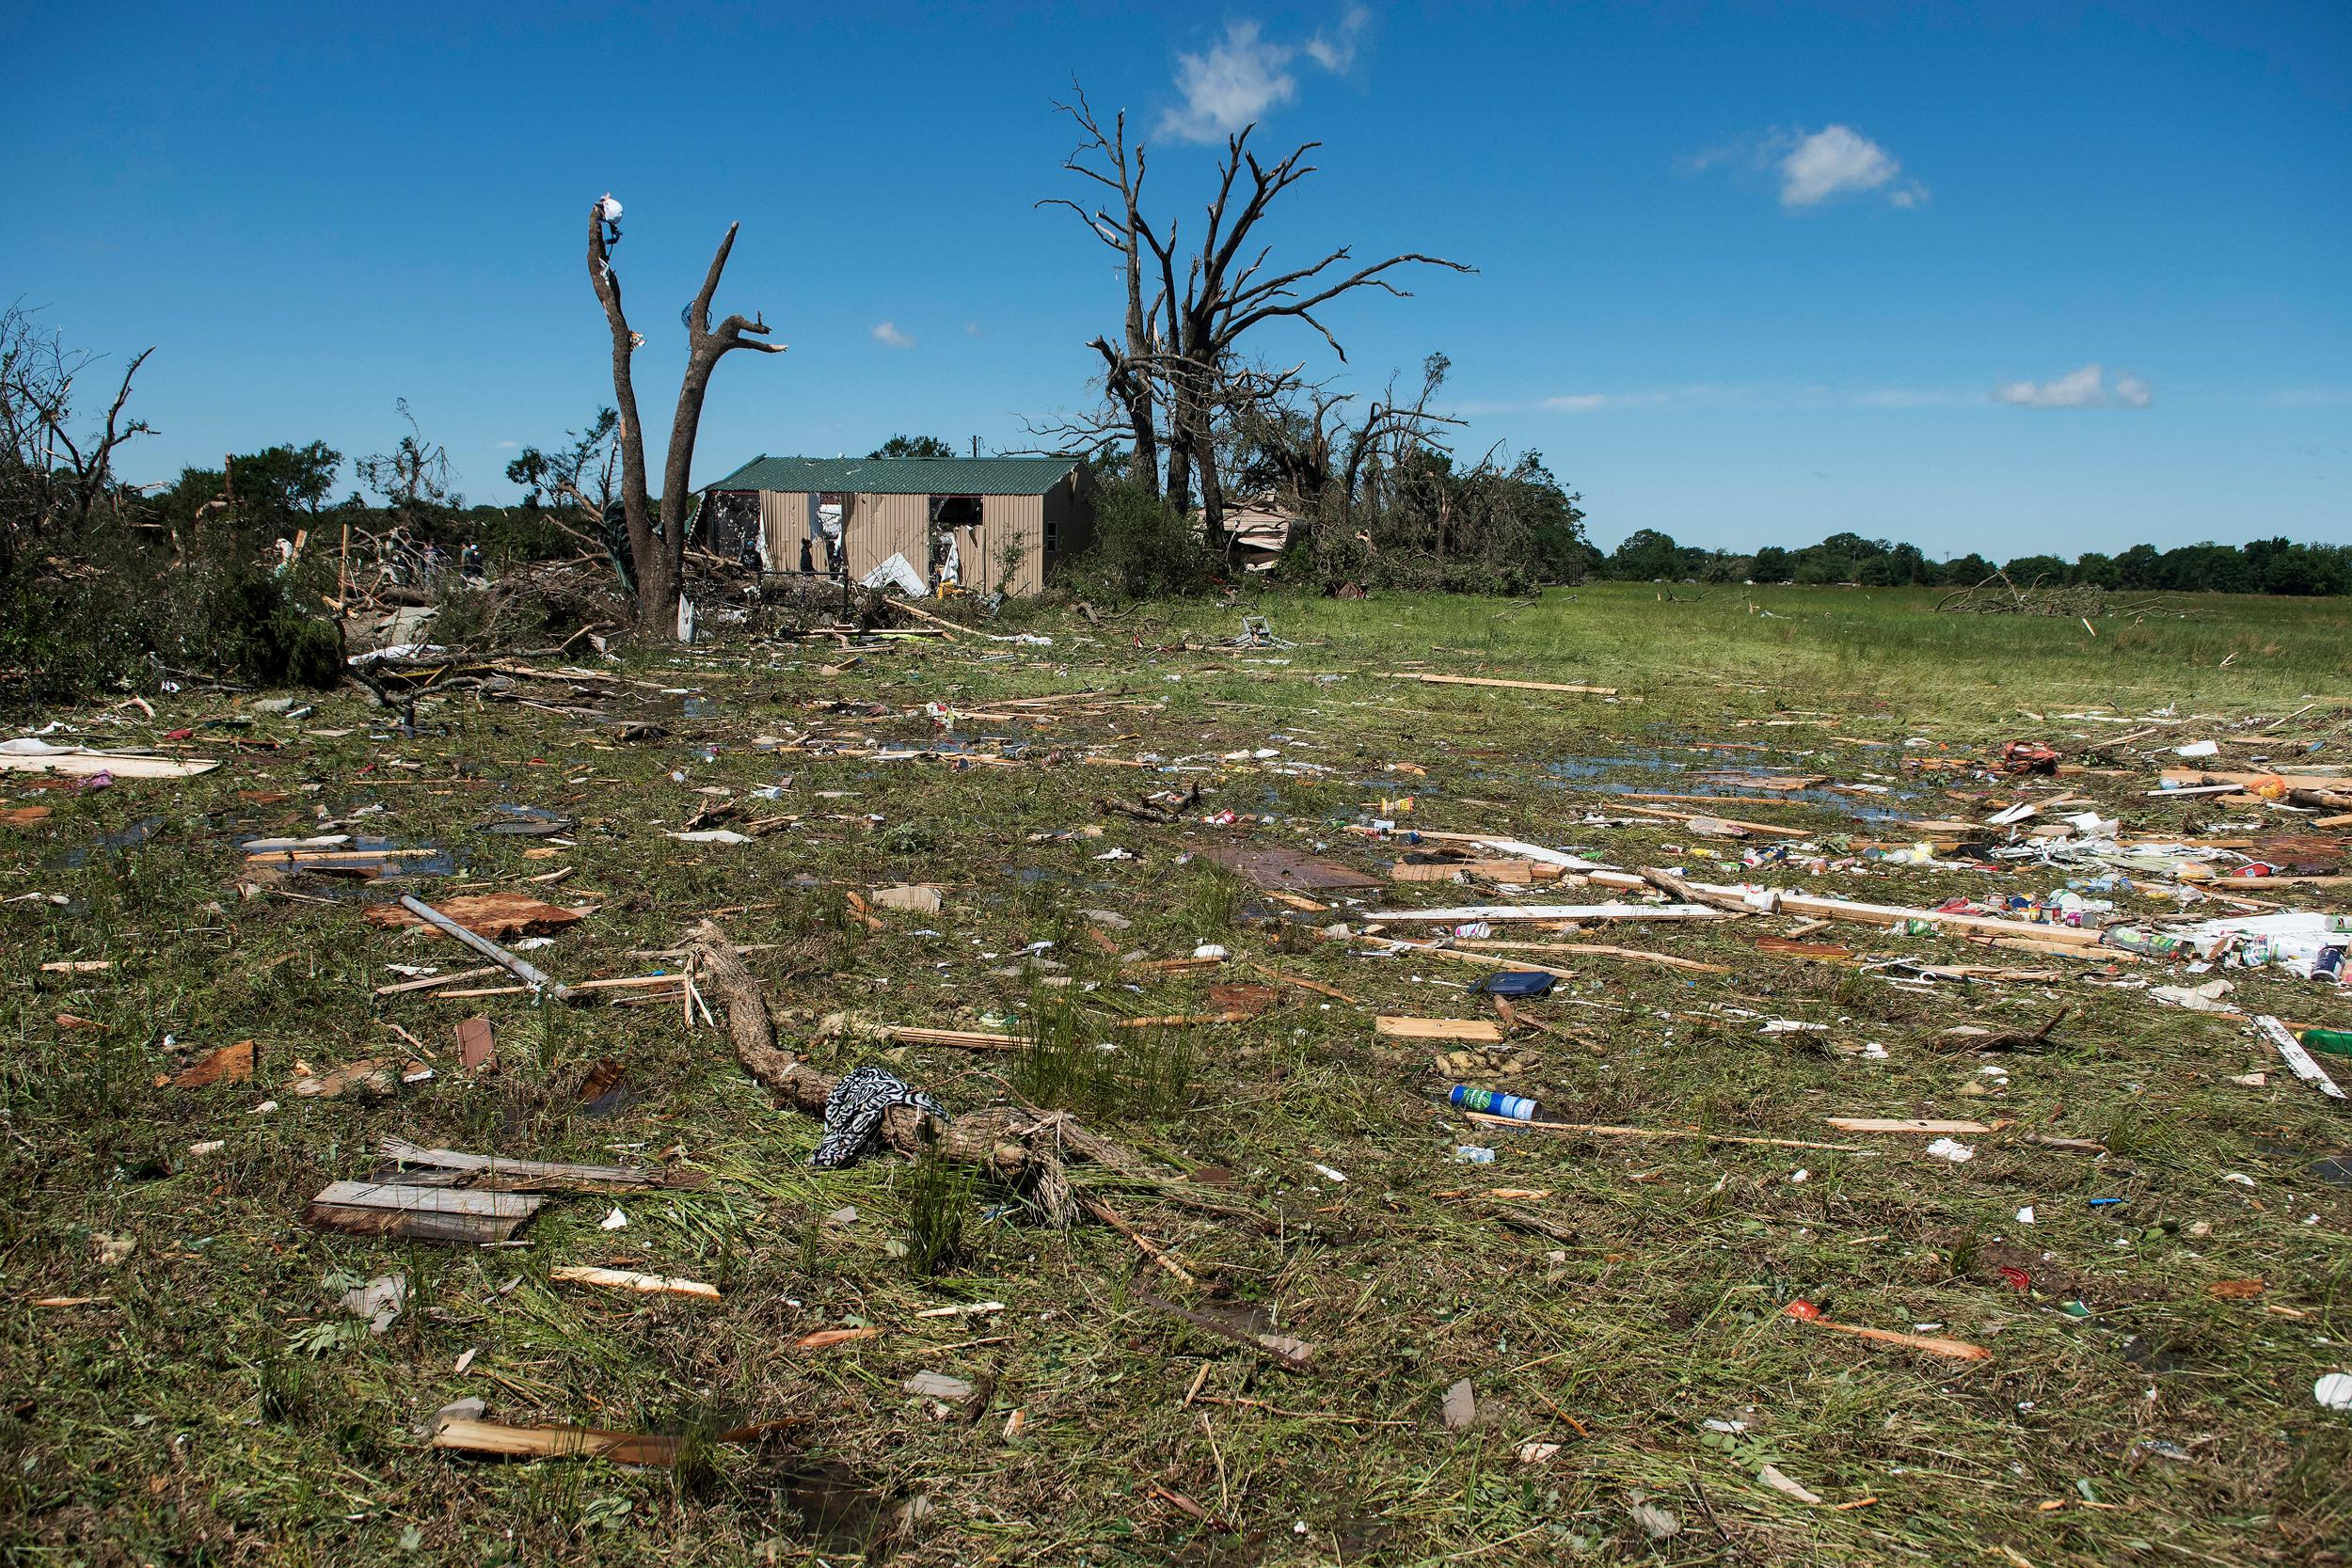 Debris lies on the ground in Canton, Texas on Sunday, April 30, 2017. Severe storms including tornadoes swept through several small towns in East Texas, killing several people, and leaving a trail of overturned vehicles, mangled trees and damaged homes, authorities said Sunday. (Sarah A. Miller/Tyler Morning Telegraph via AP)